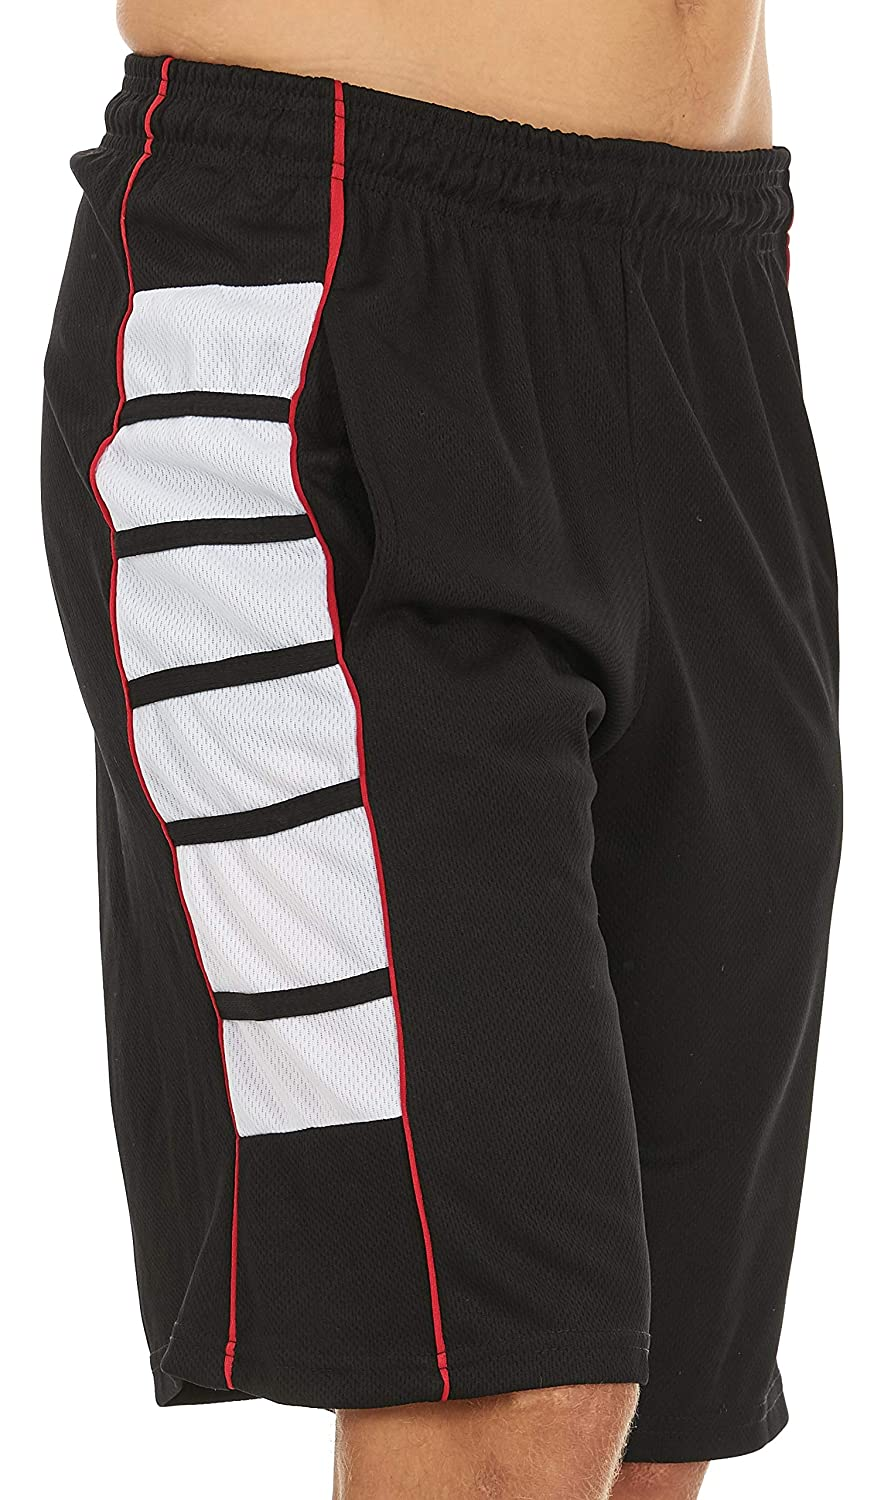 Unique Styles Mens Athletic Basketball Long Shorts for Men with Pockets